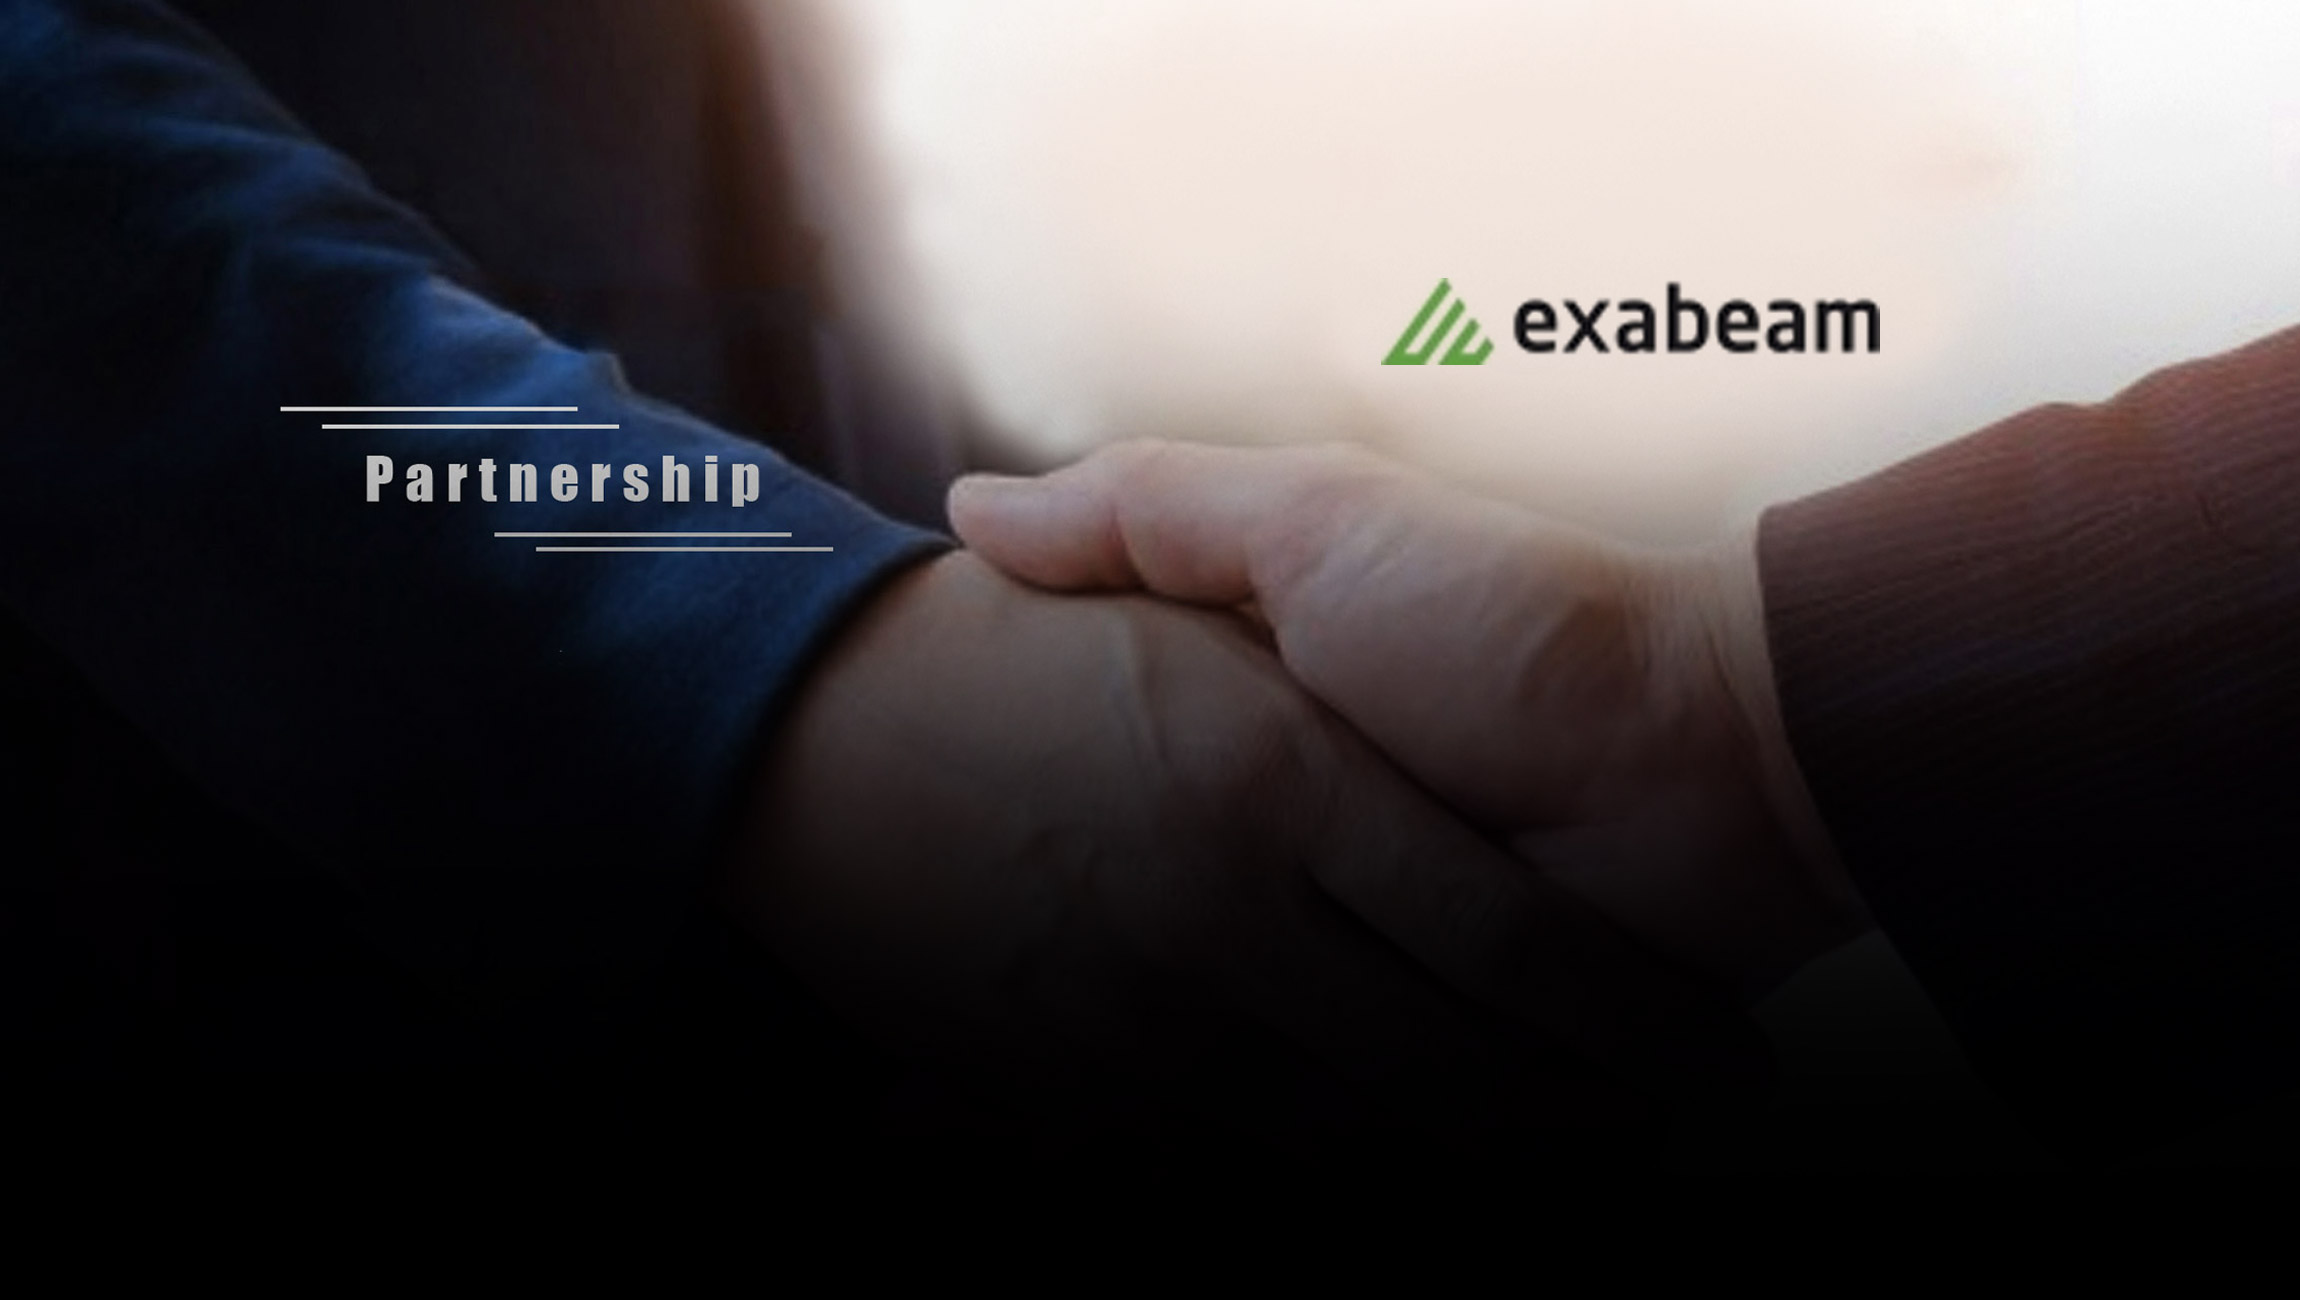 Exabeam and Code42 Announce Strategic Partnership to Detect and Respond to Risk from Insider Threats